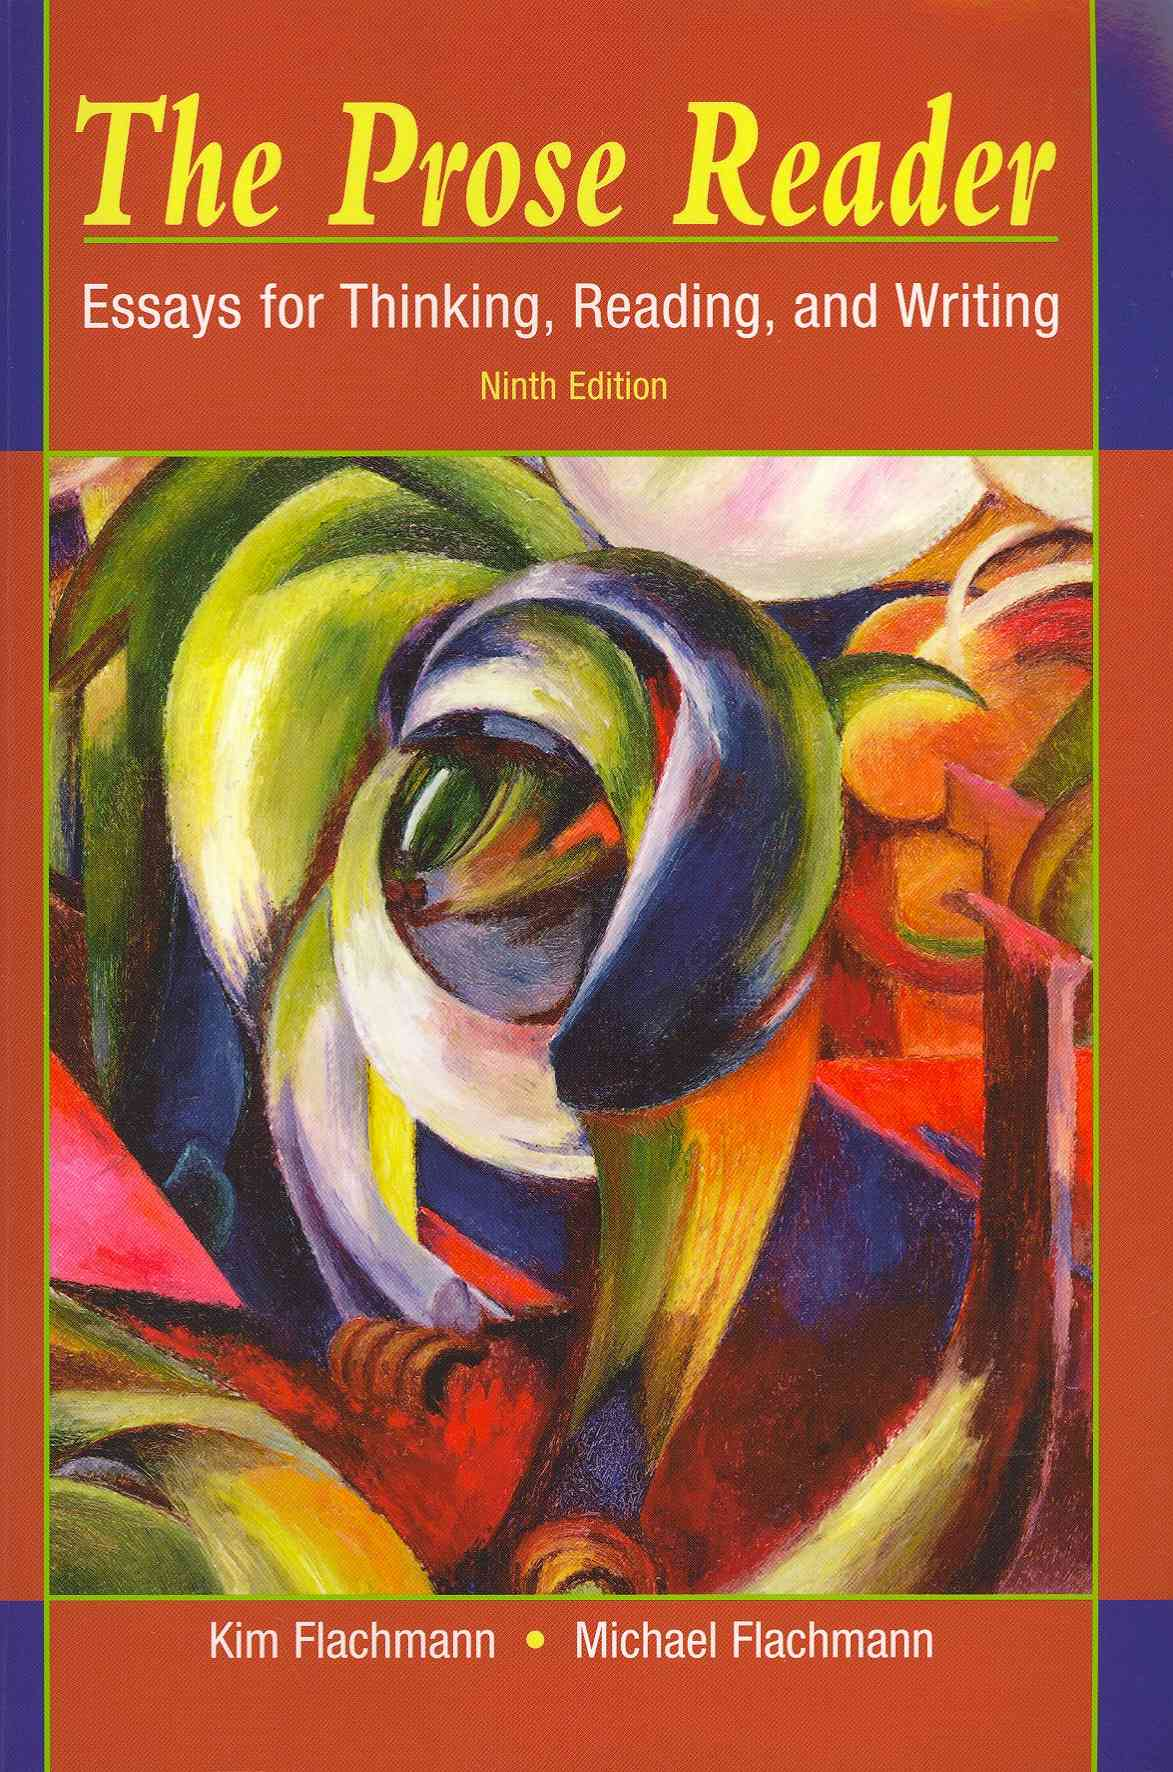 the brief prose reader essays for thinking reading and writing